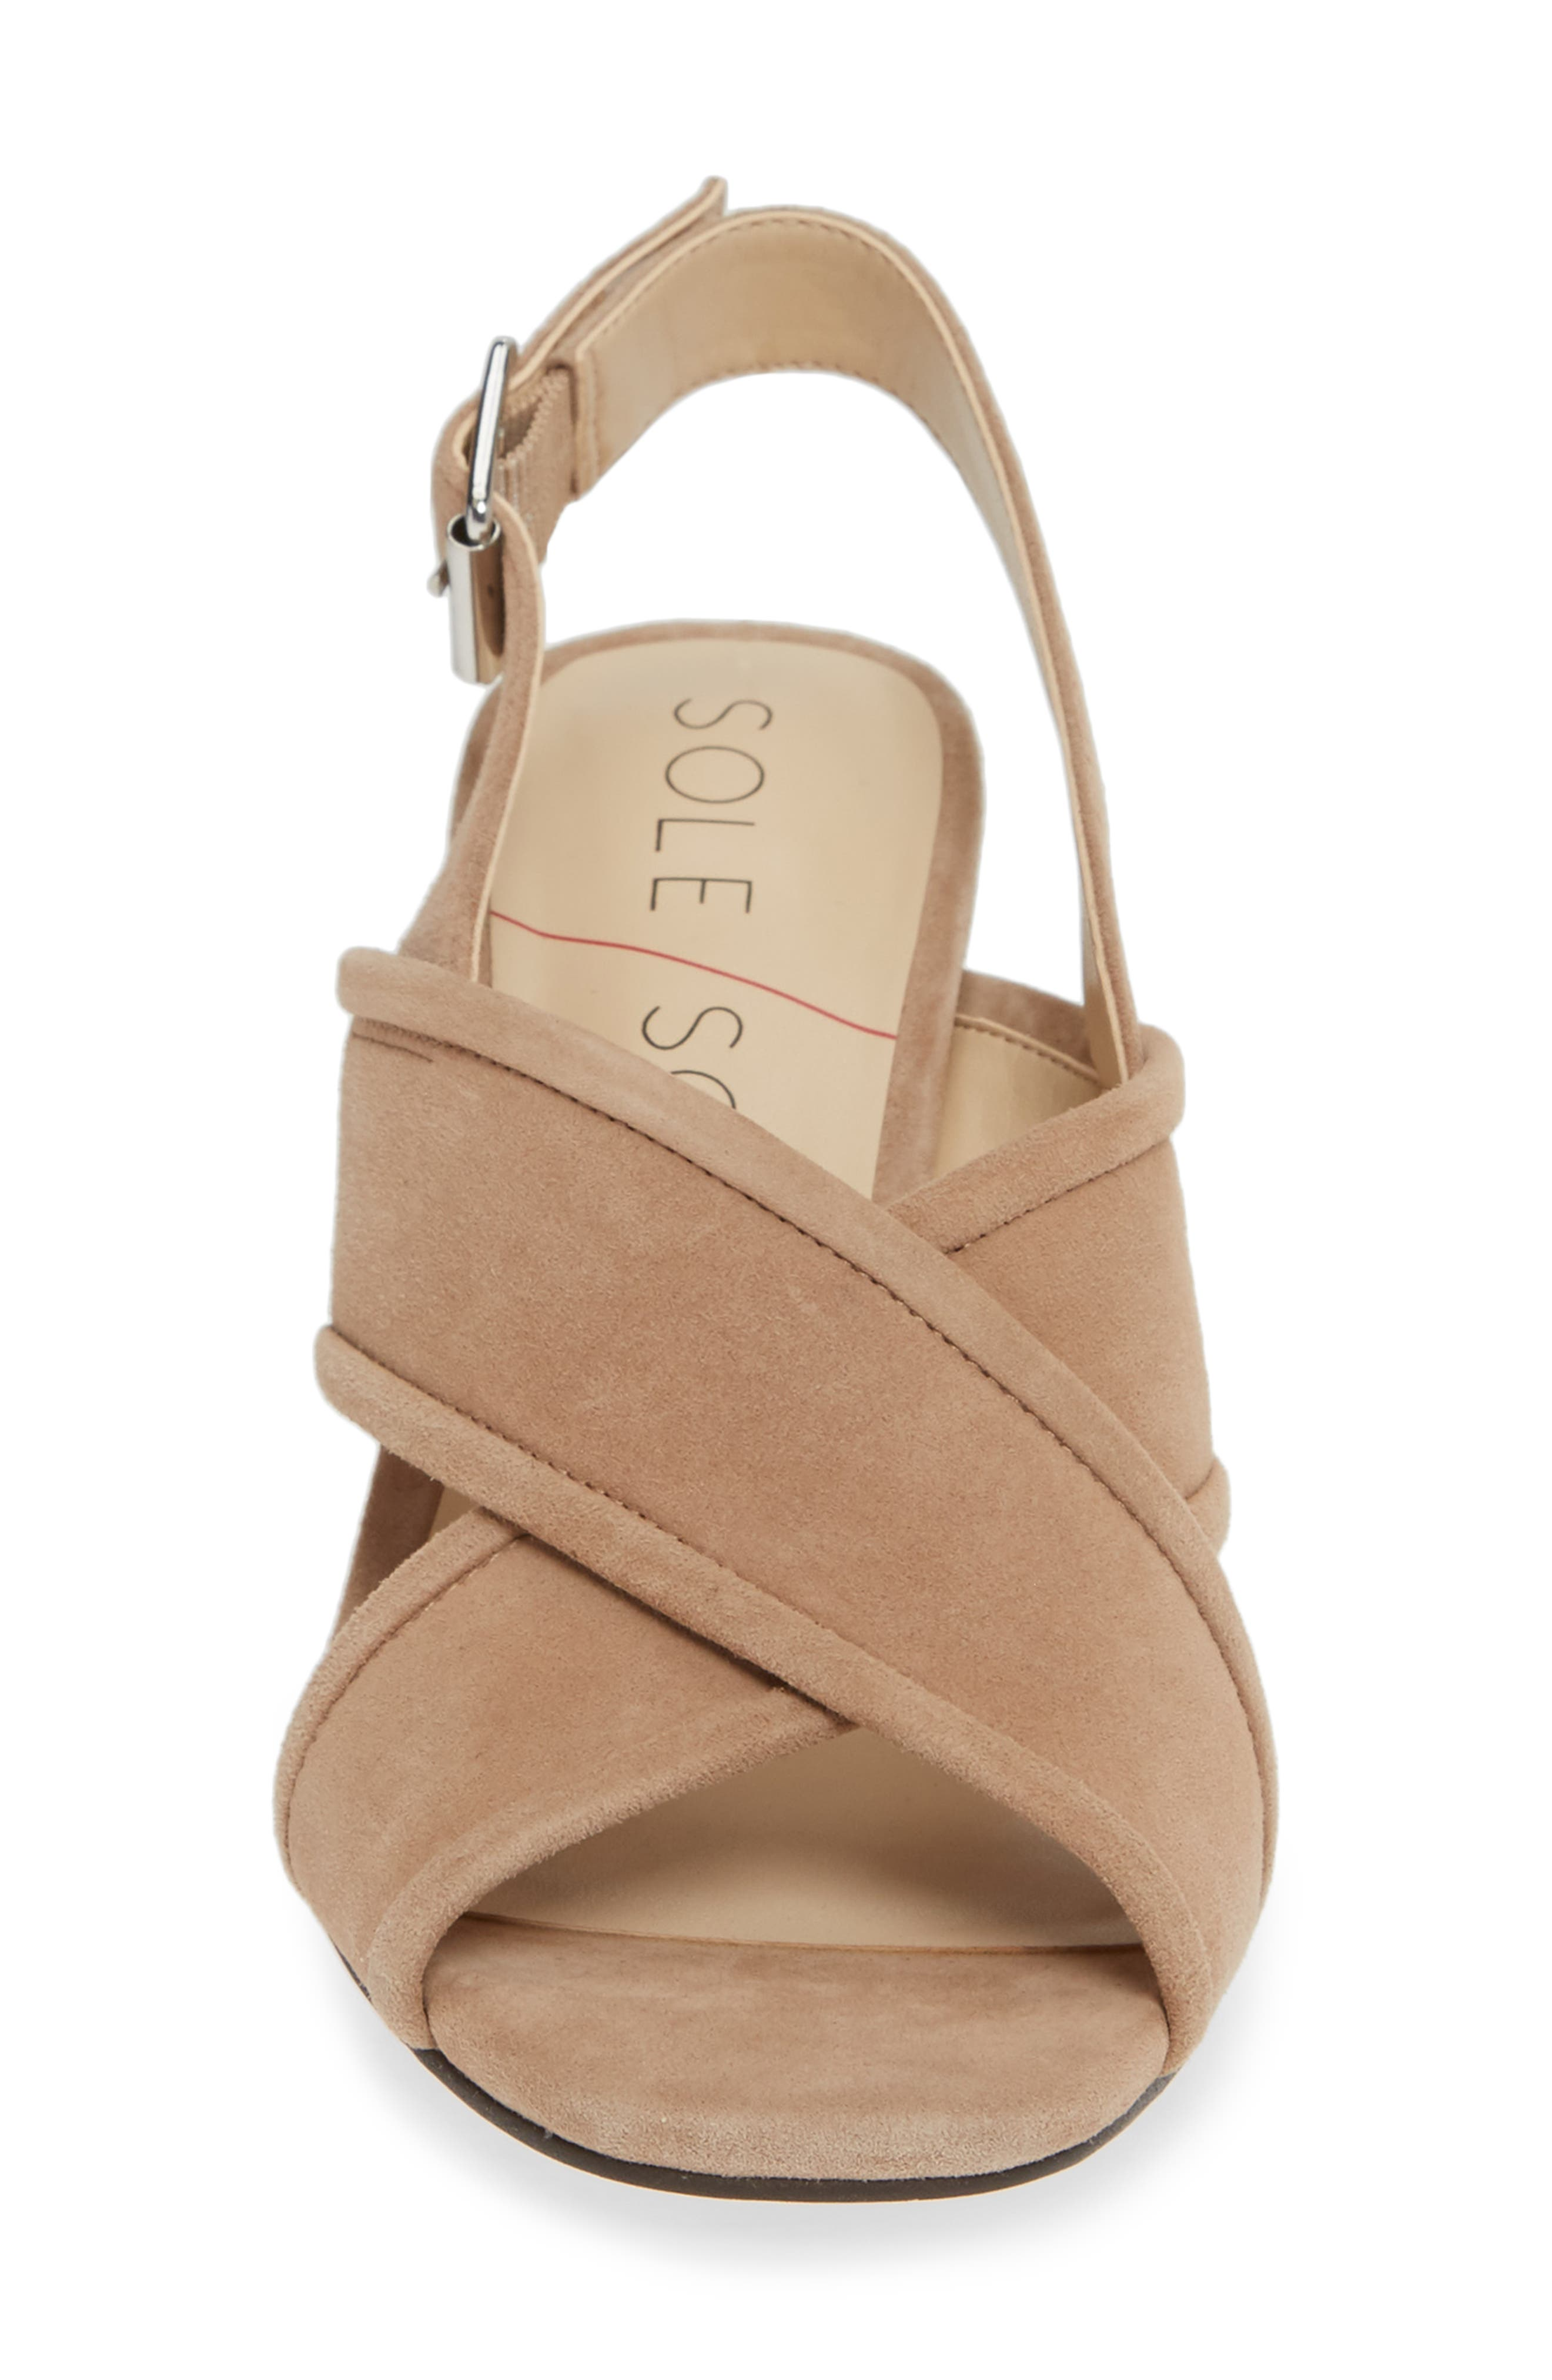 SOLE SOCIETY, Joree Slingback Sandal, Alternate thumbnail 4, color, DUSTED TAUPE SUEDE